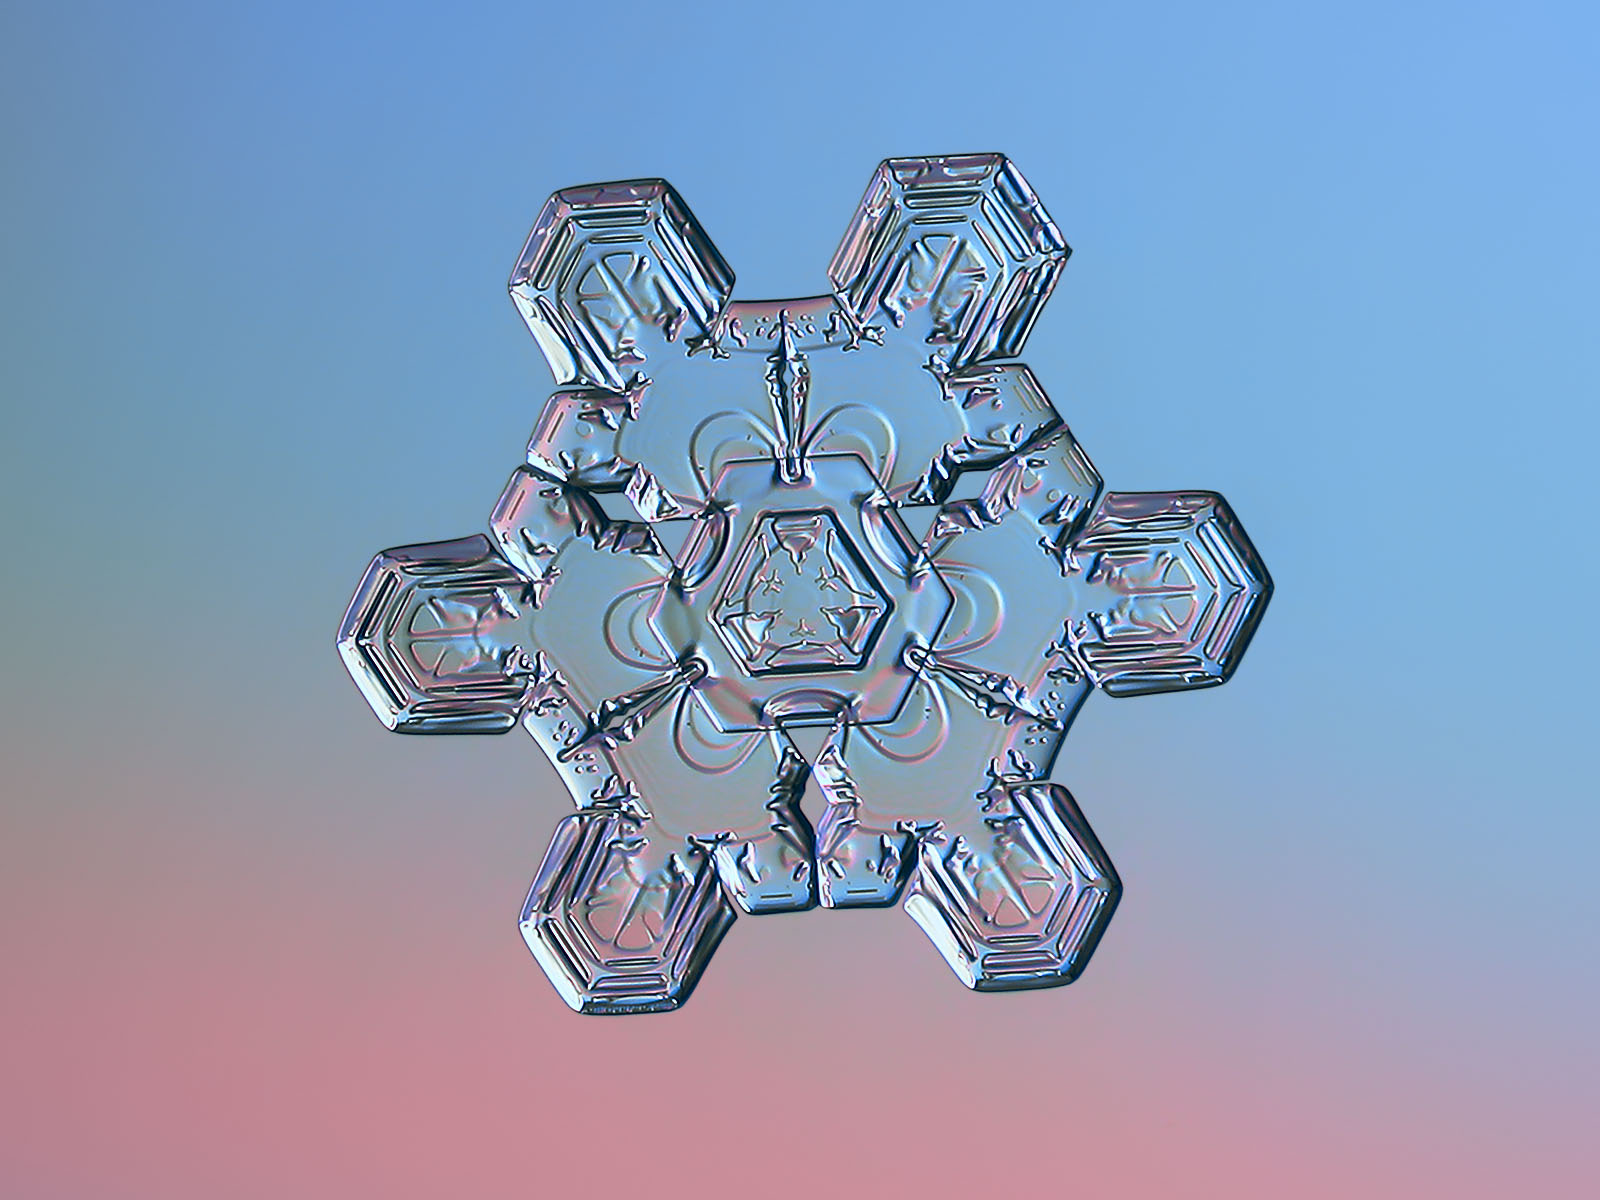 Snowflake macro photo: unusual star plate with short, straight arms and massive center with triangular symmetry